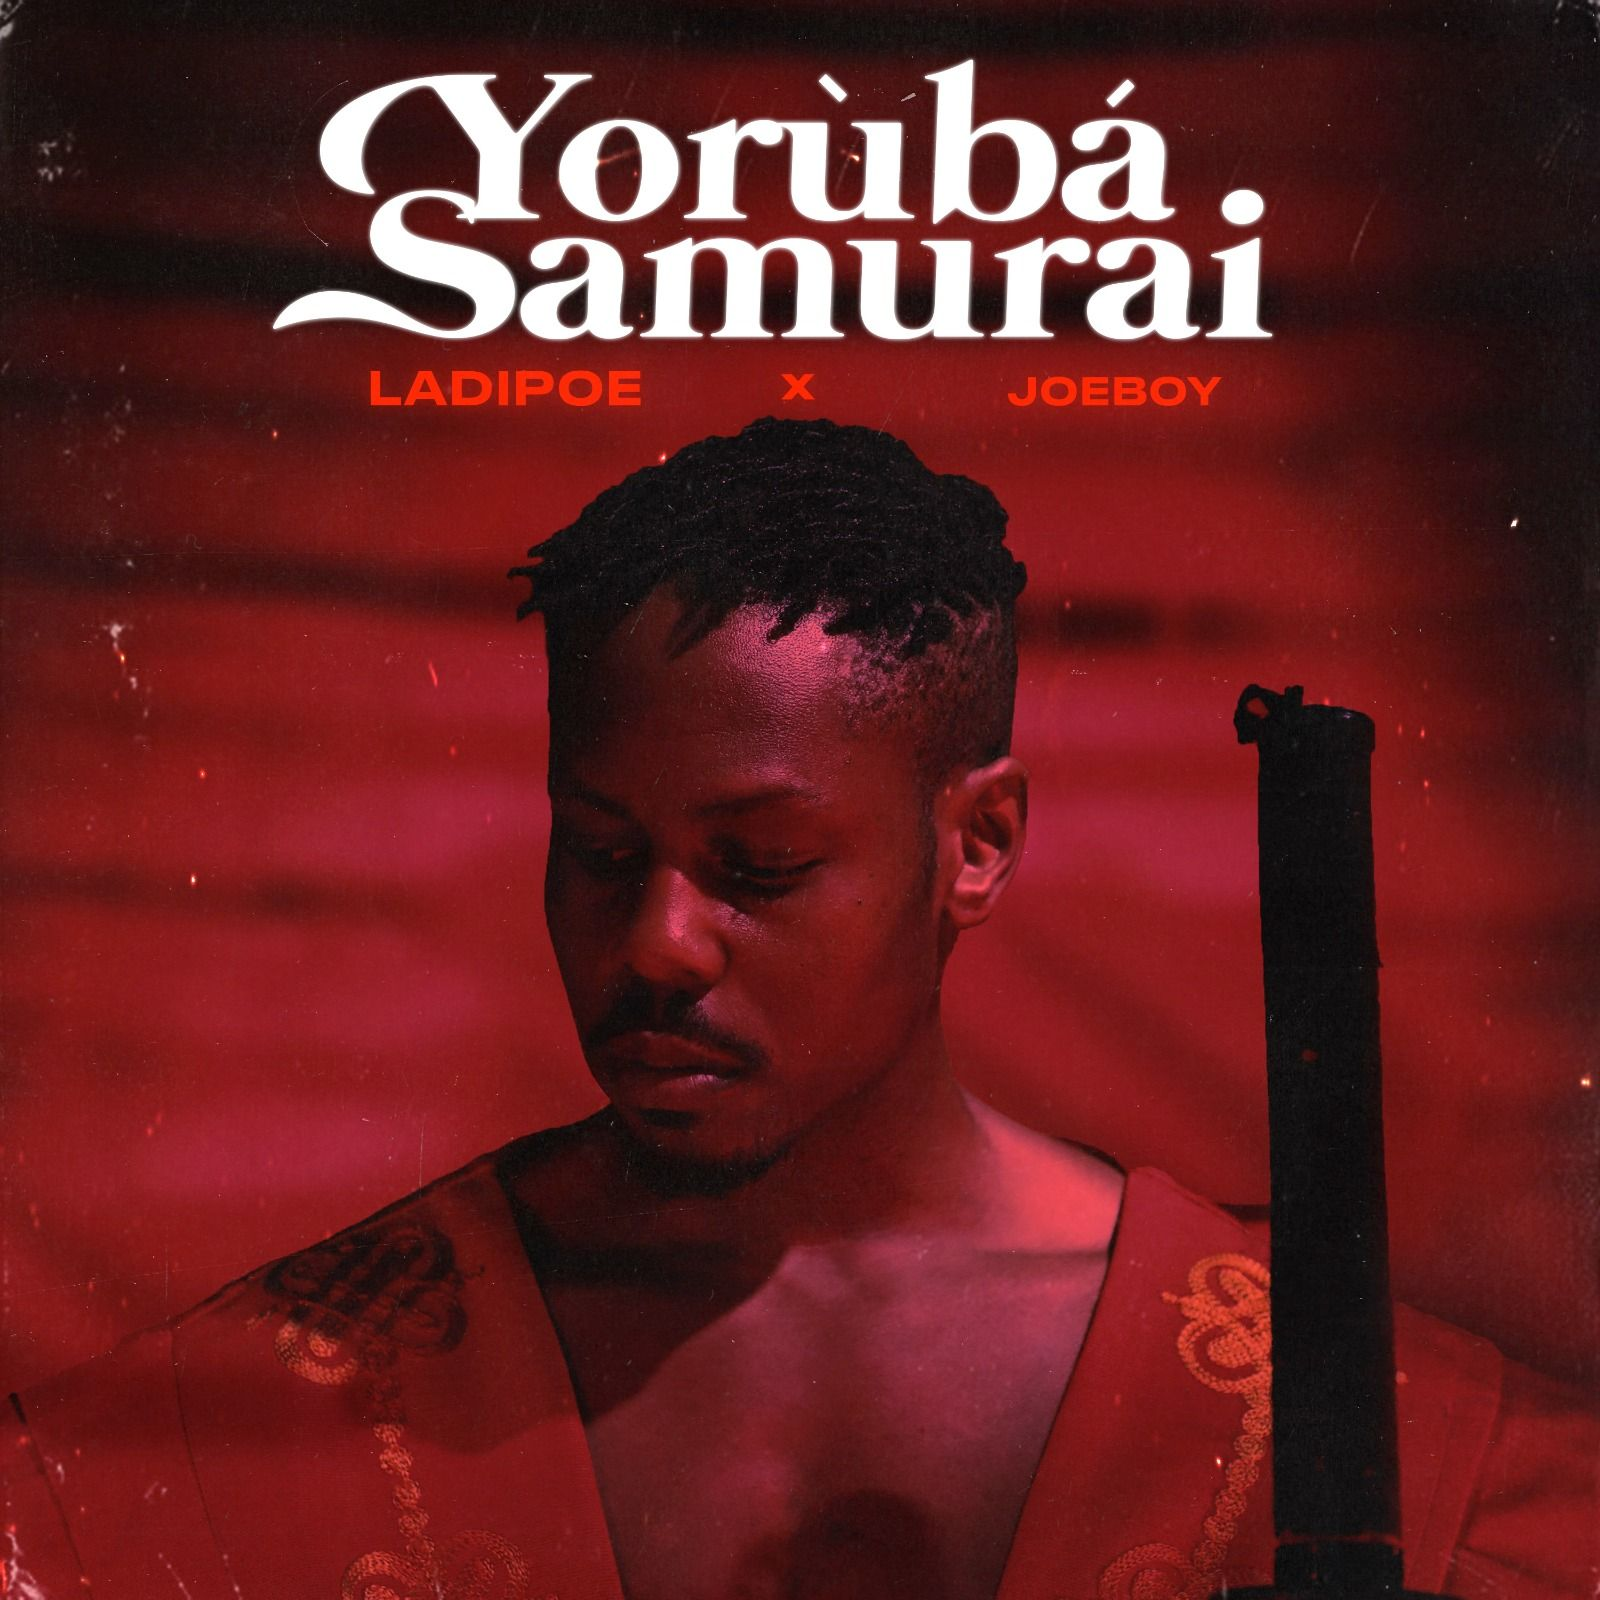 LadiPoe Ft. Joeboy - Yoruba Samurai (Lyrics)